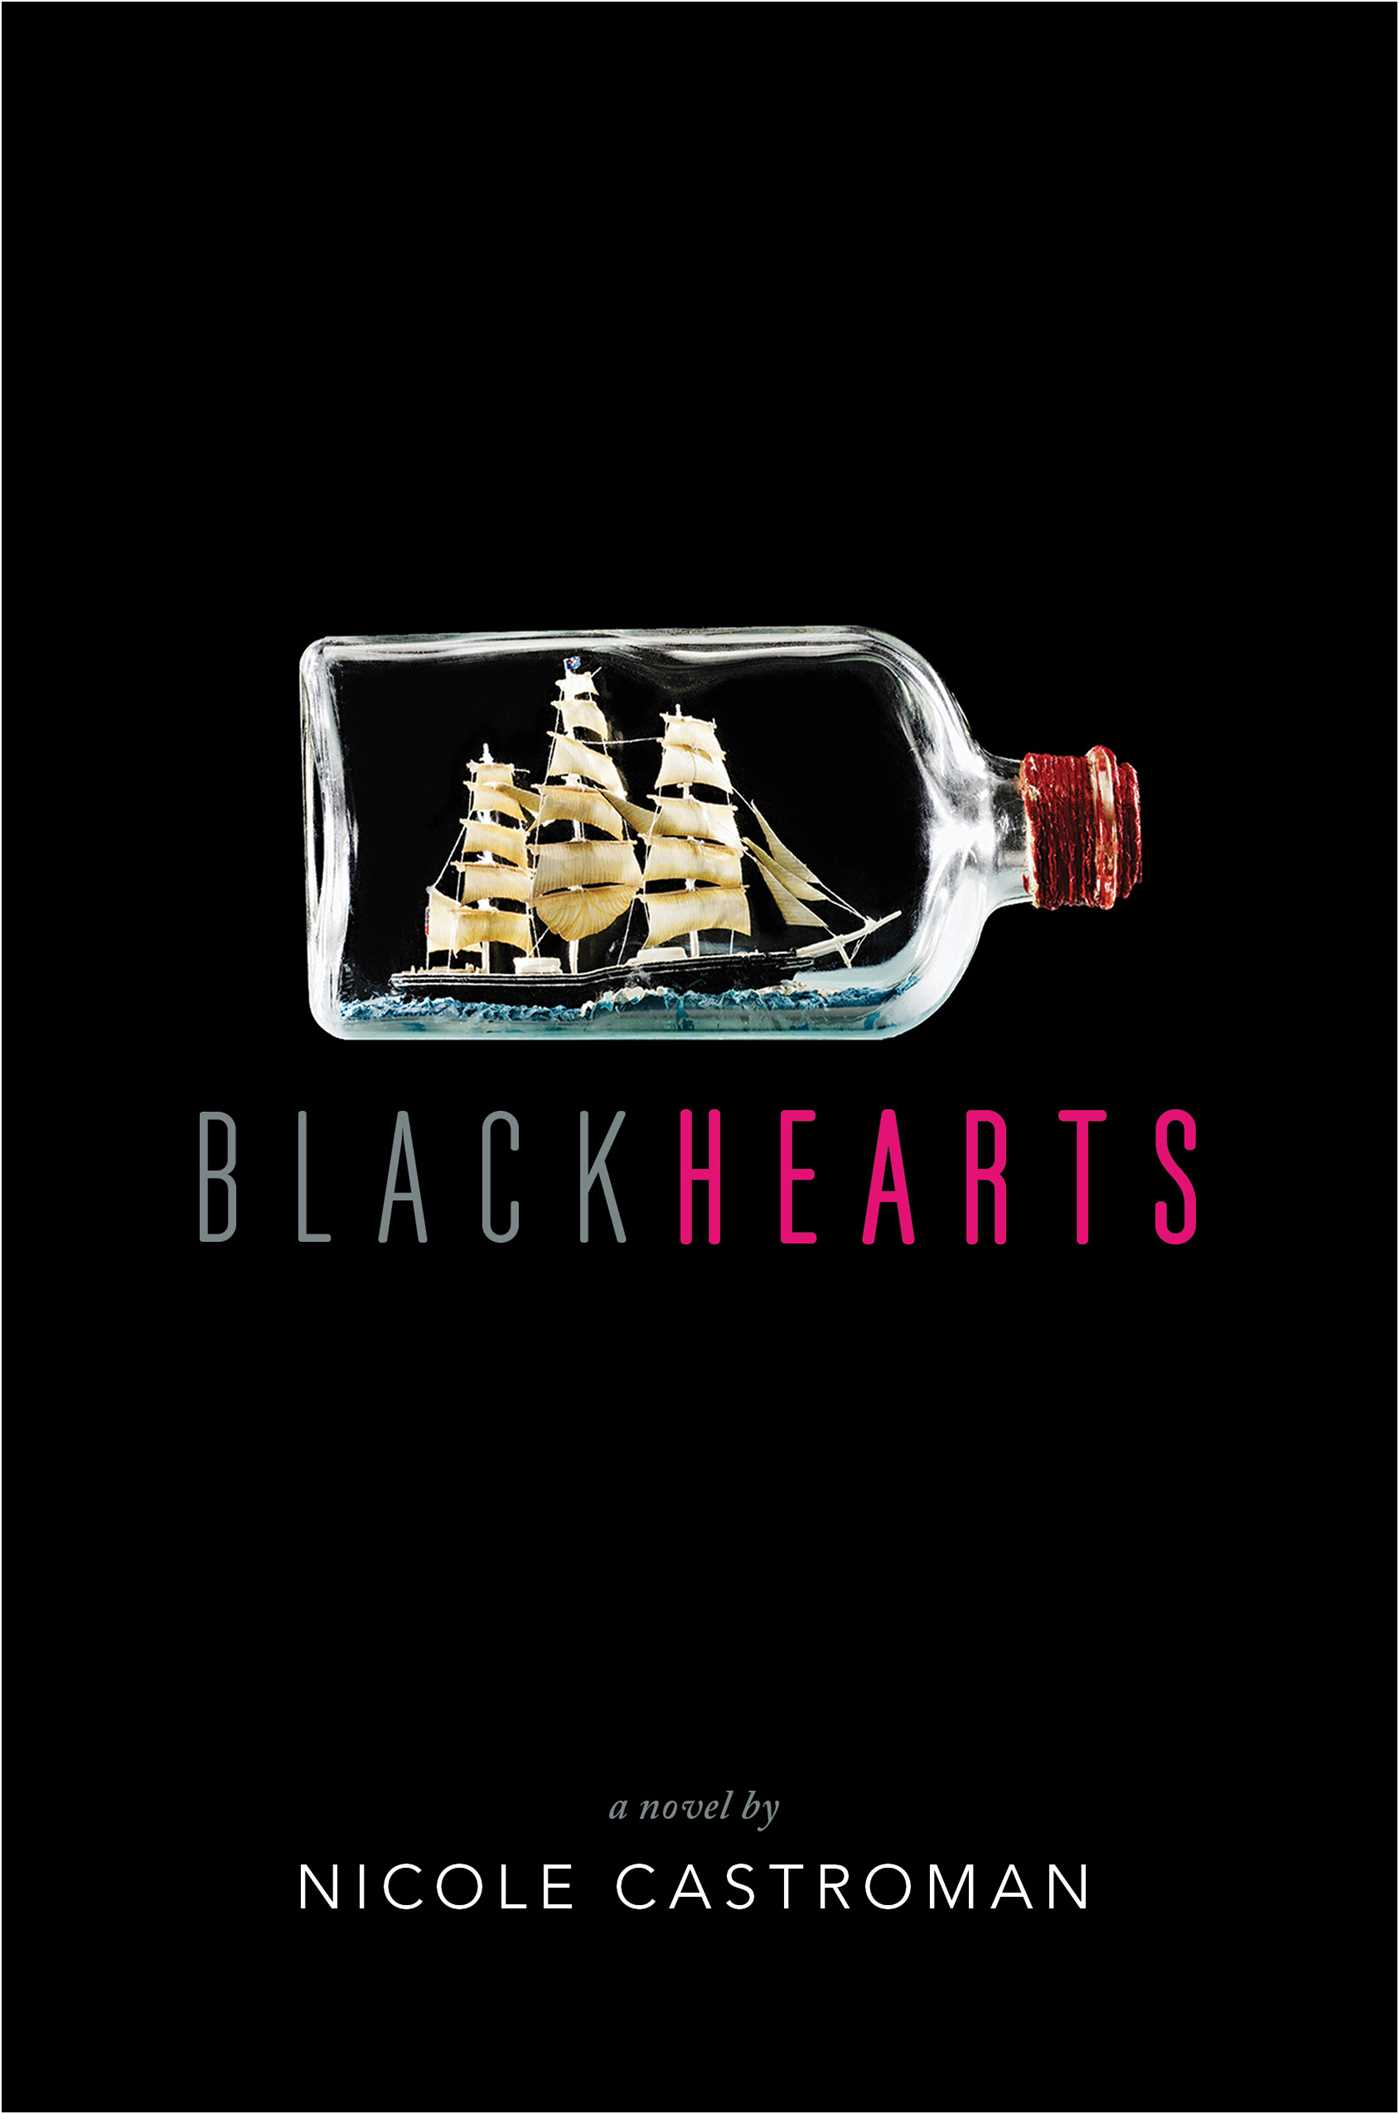 Image result for blackhearts book